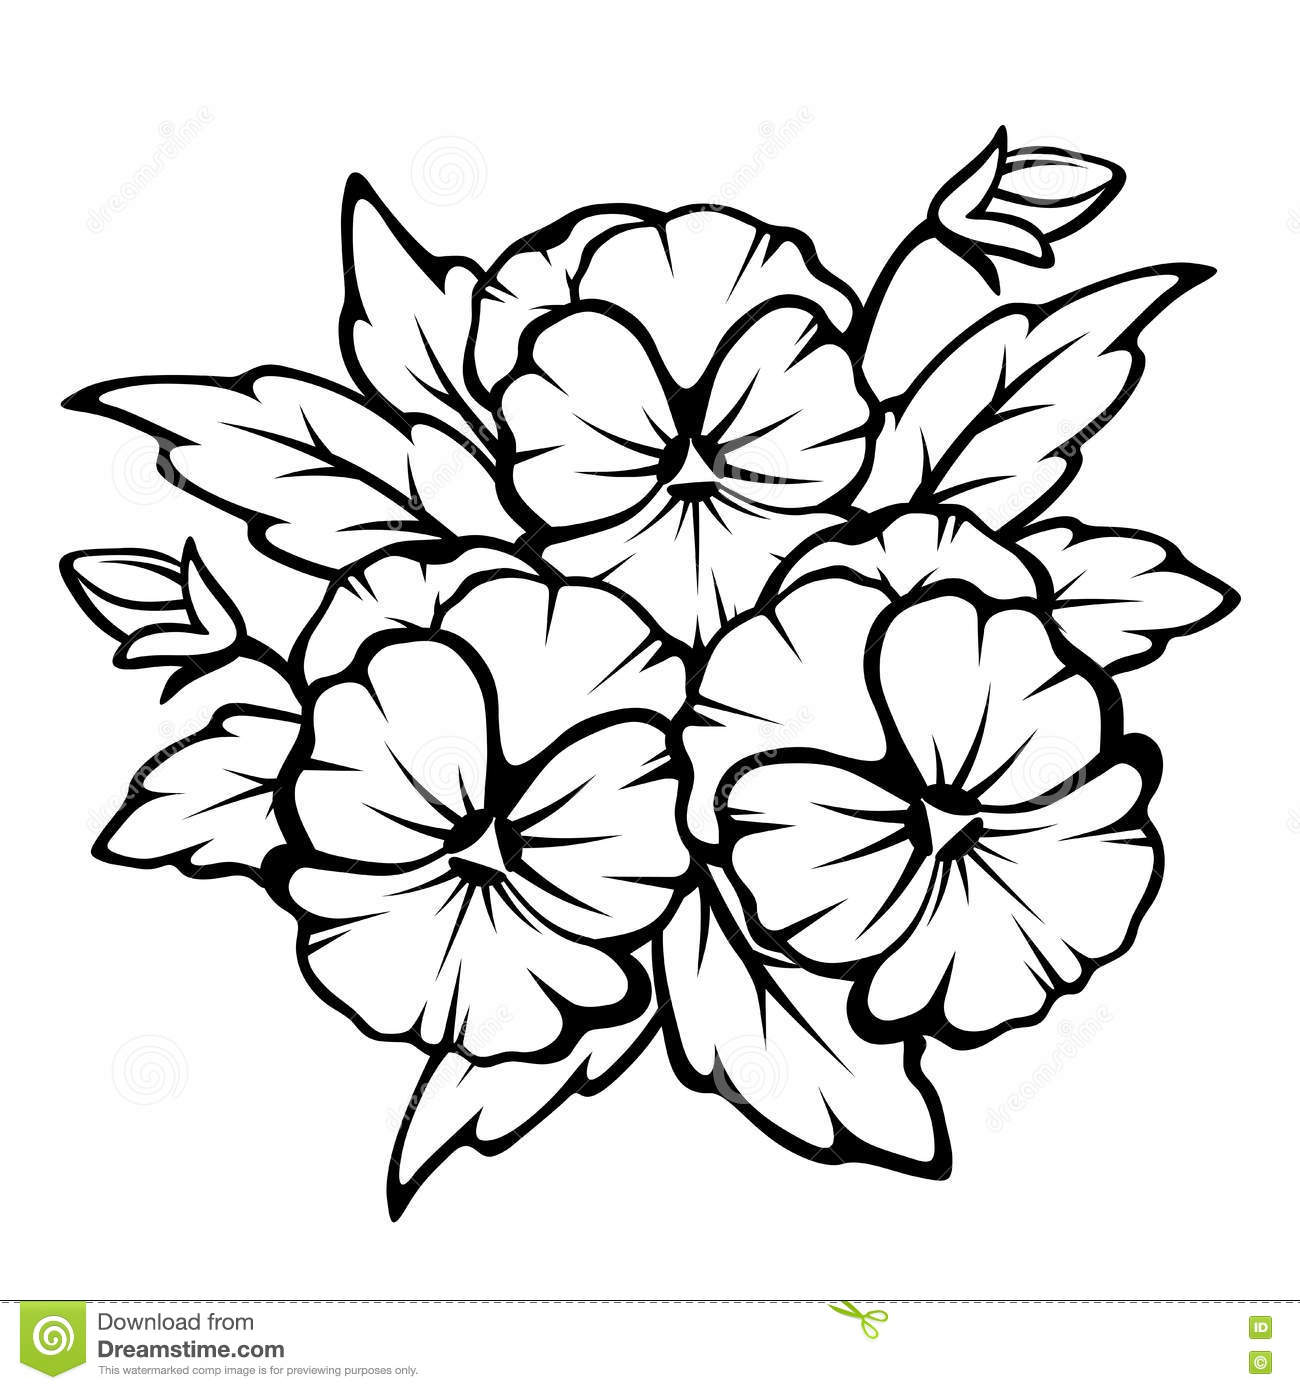 Pansy Flowers Black Contours. Vector Illustration. Stock